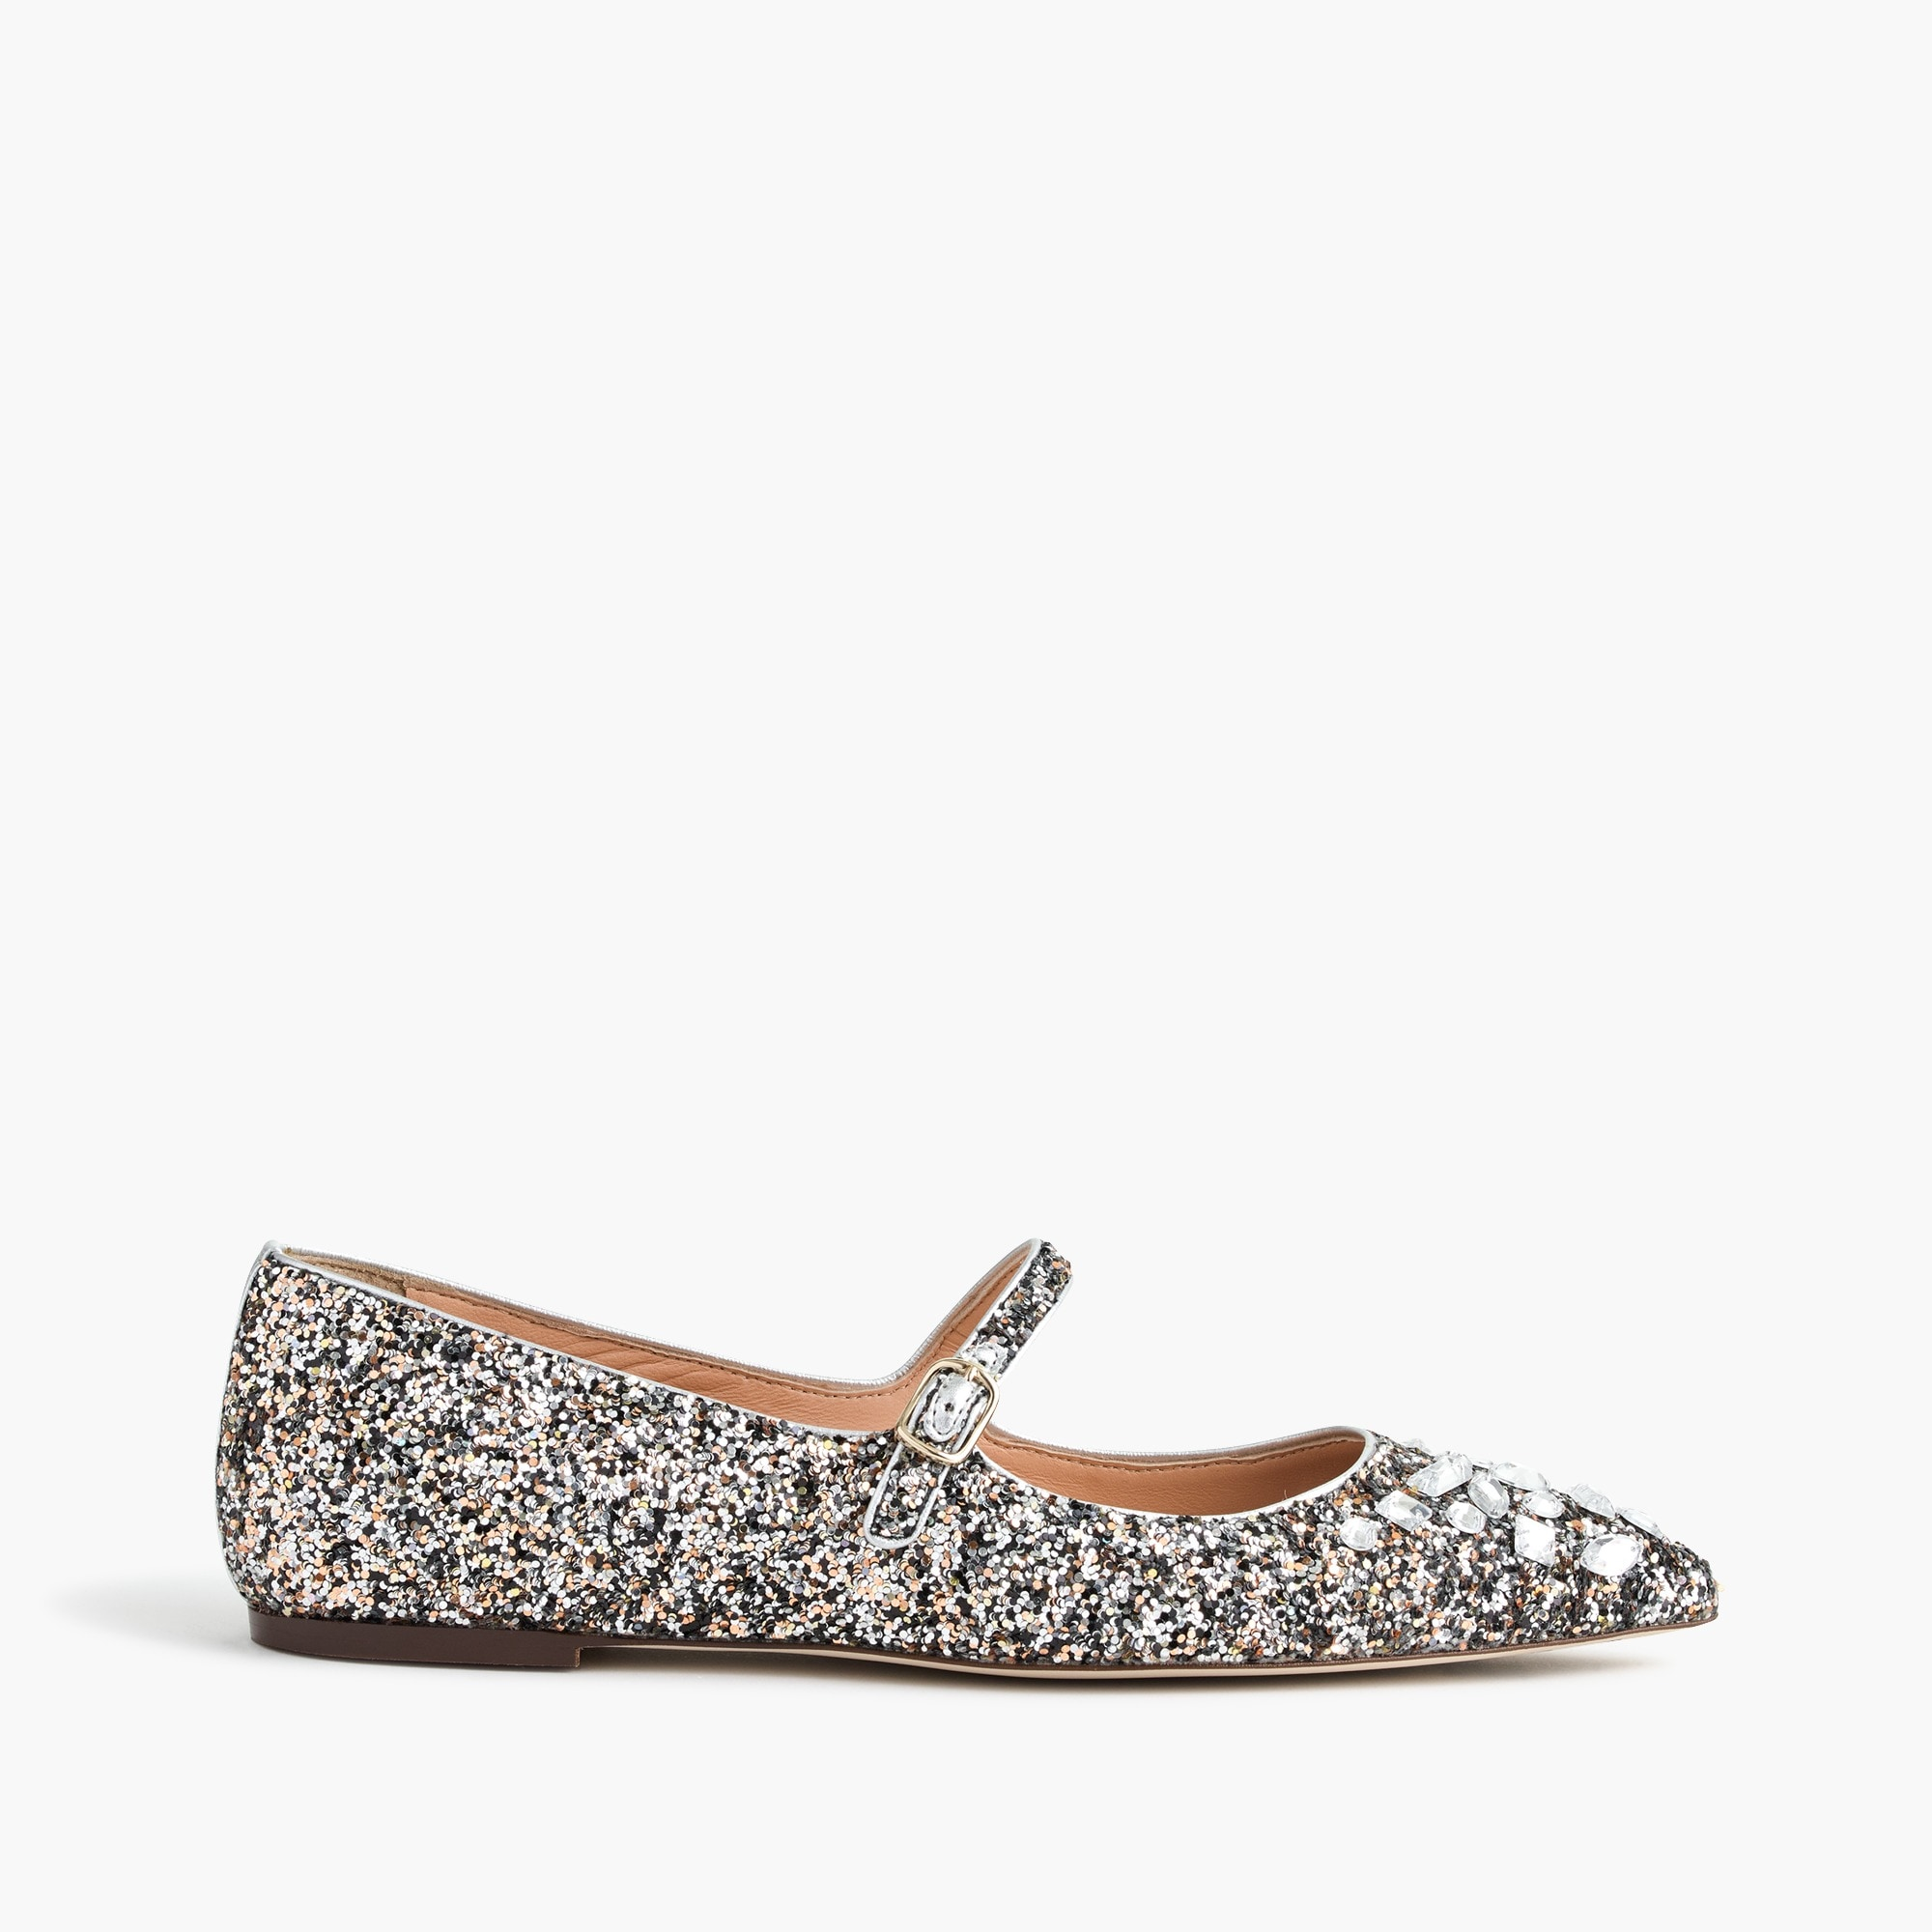 Glitter Mary Jane flats with embellishments